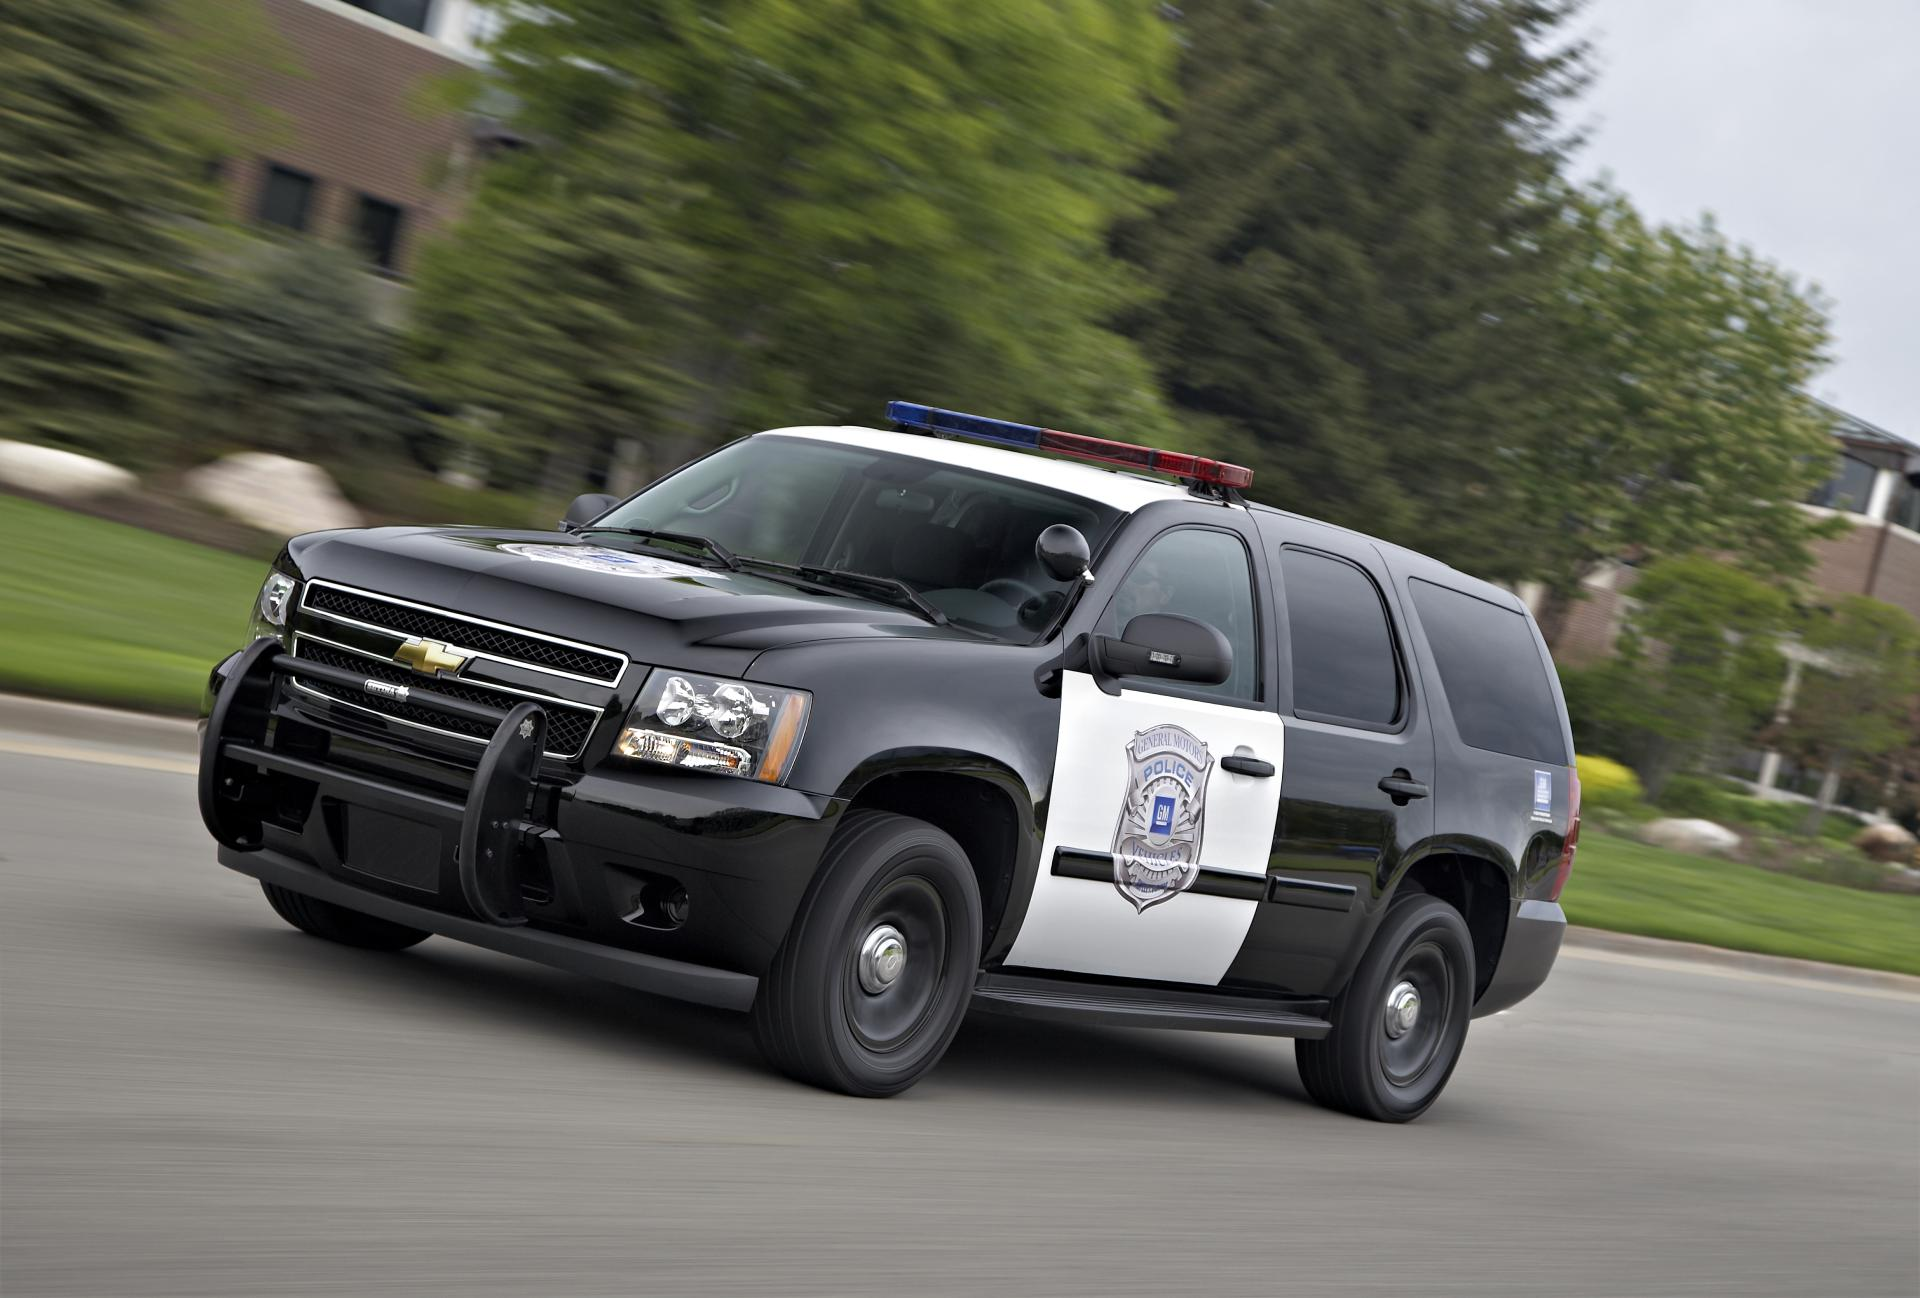 2014 Chevrolet Tahoe PPV News and Information